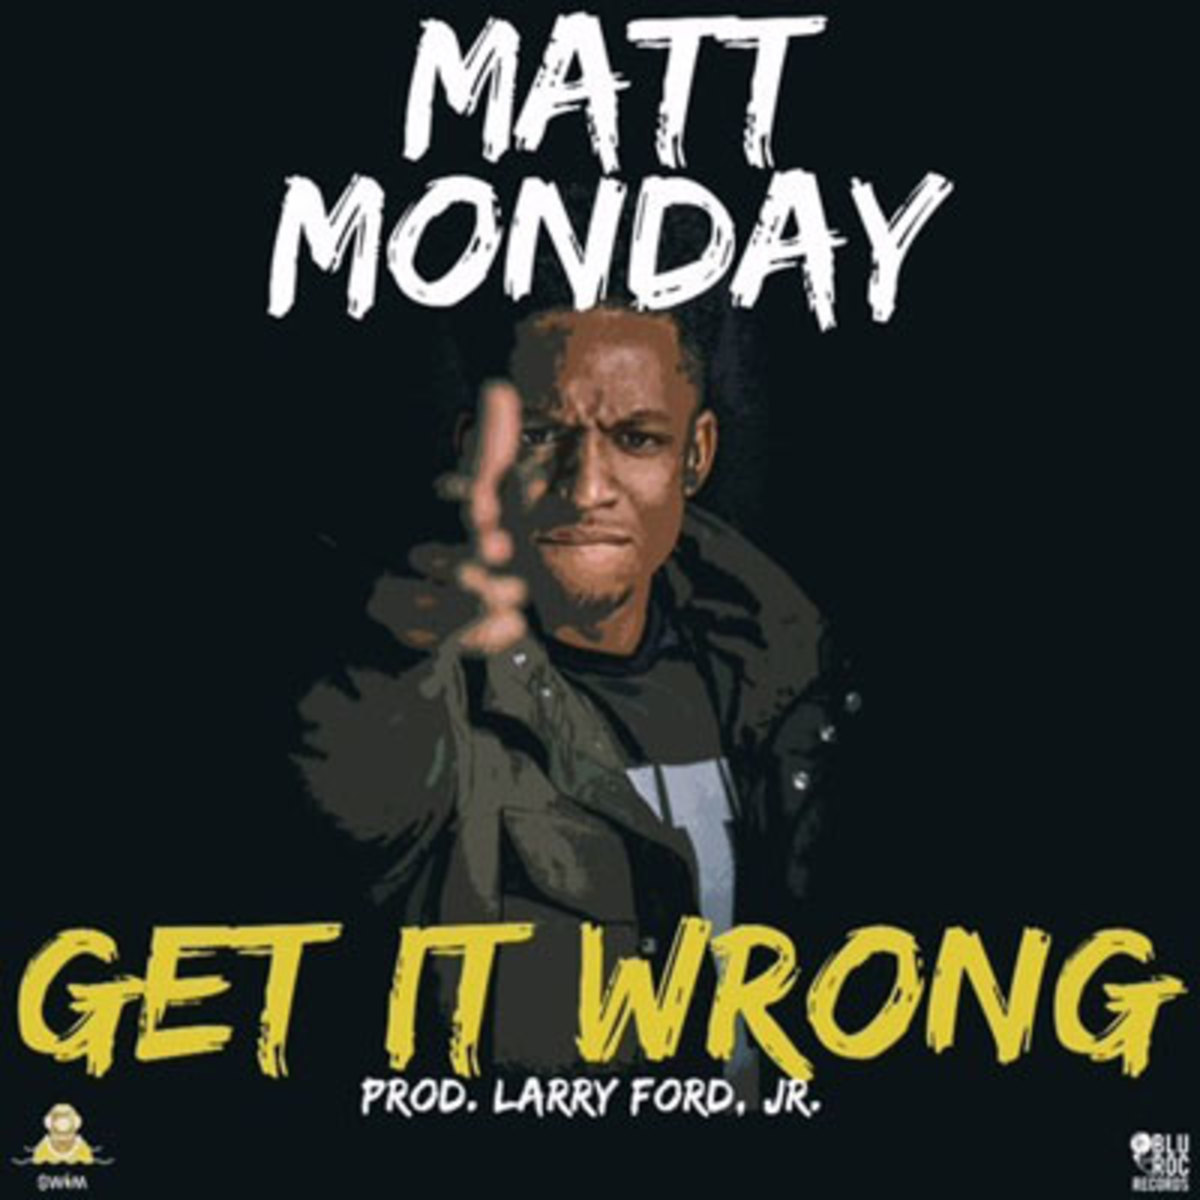 mattmonday-getitwrong.jpg